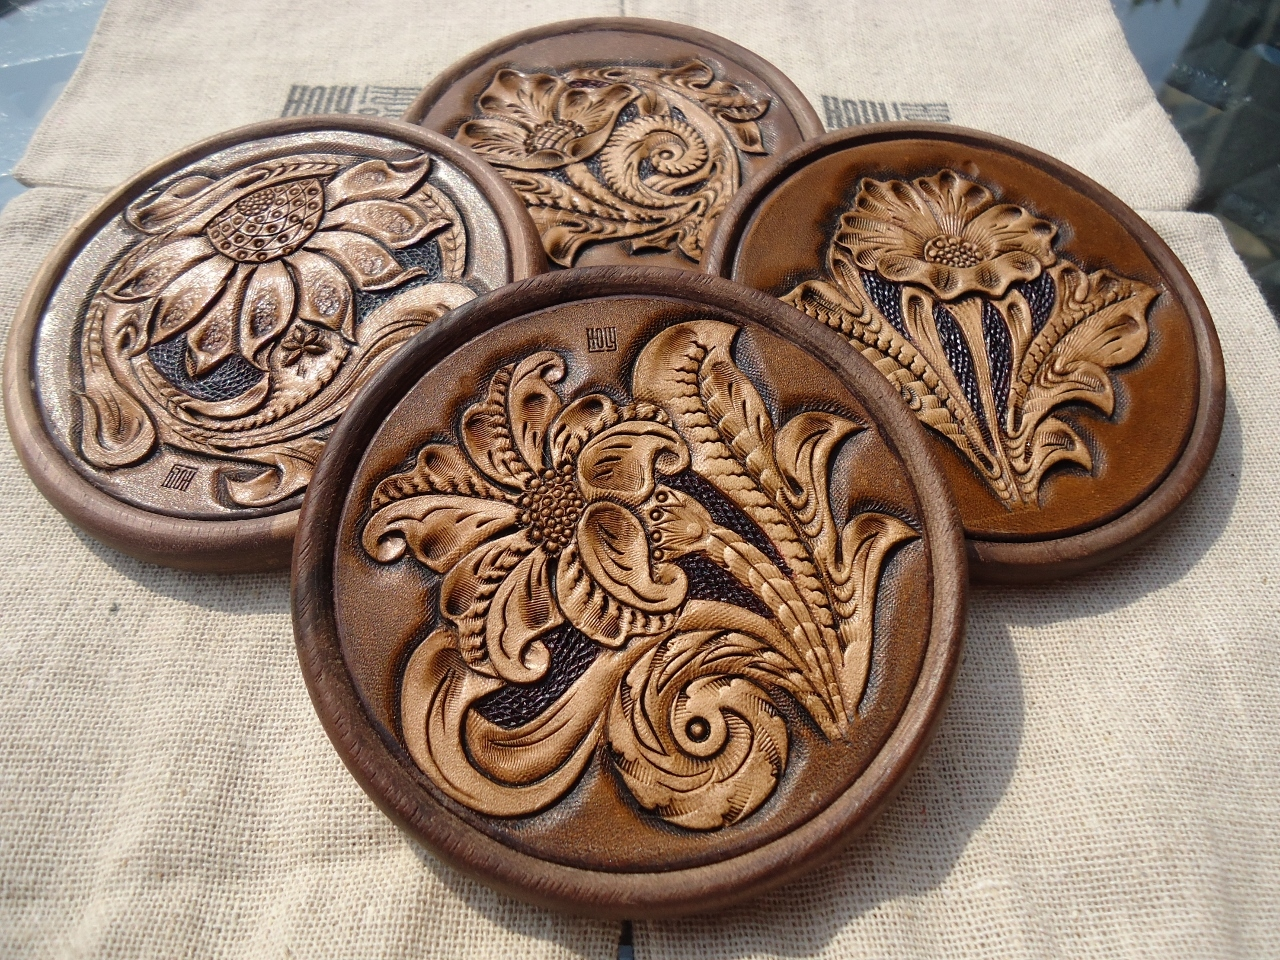 <p>Yu Family 'Holy' Leather and Wood Coaster</p>